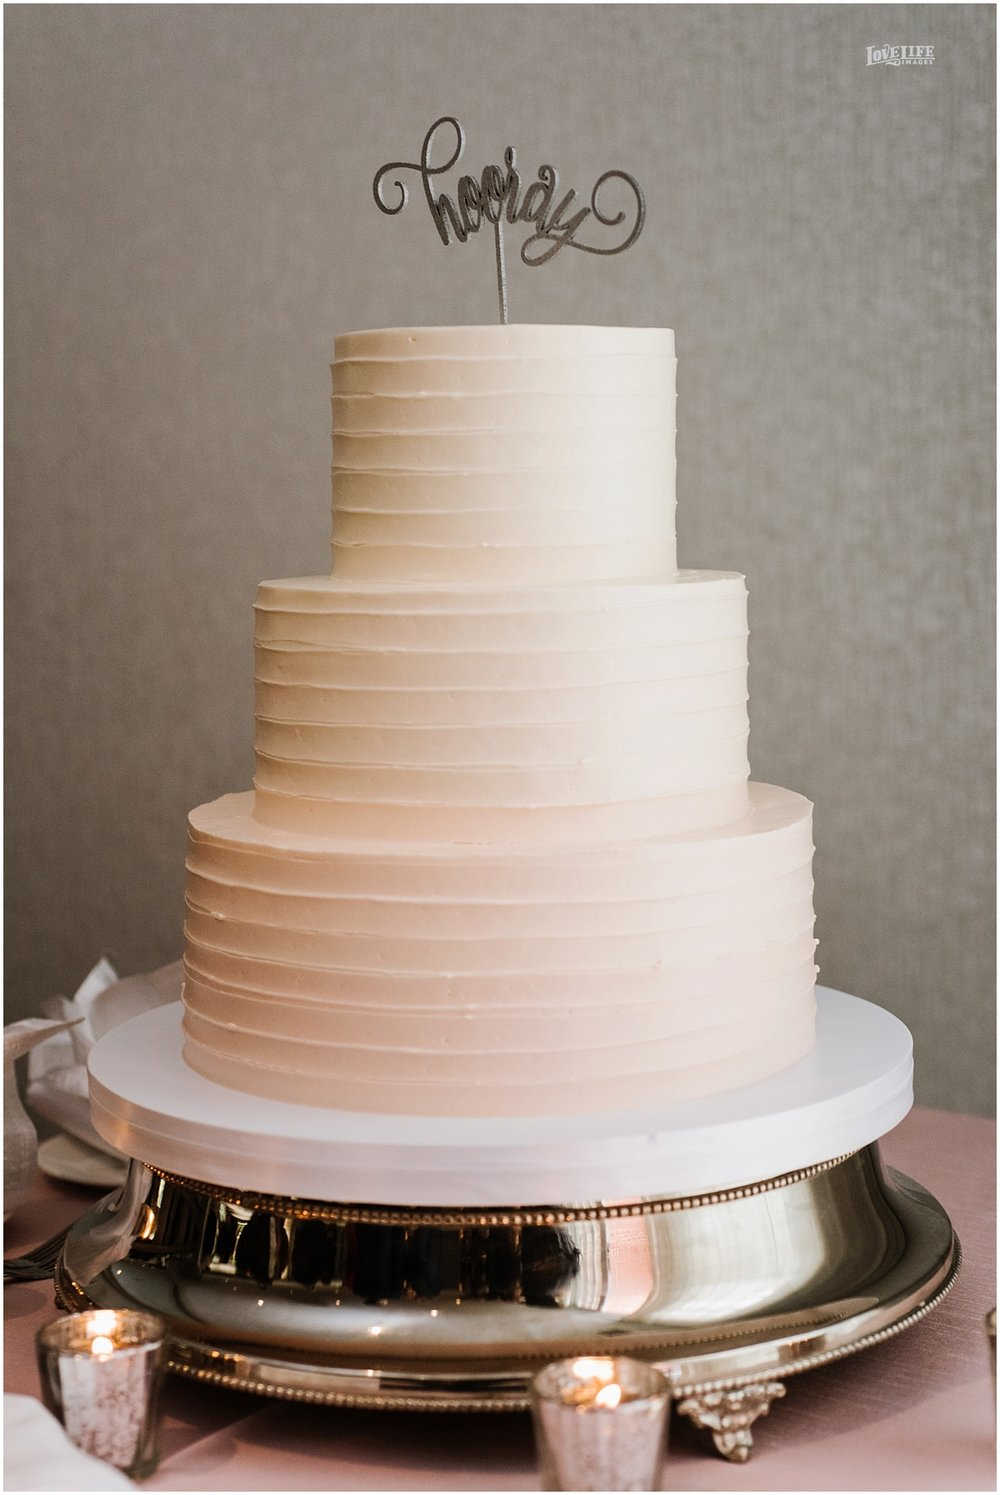 Lorien Hotel Brunch wedding cake with hooray topper.JPG